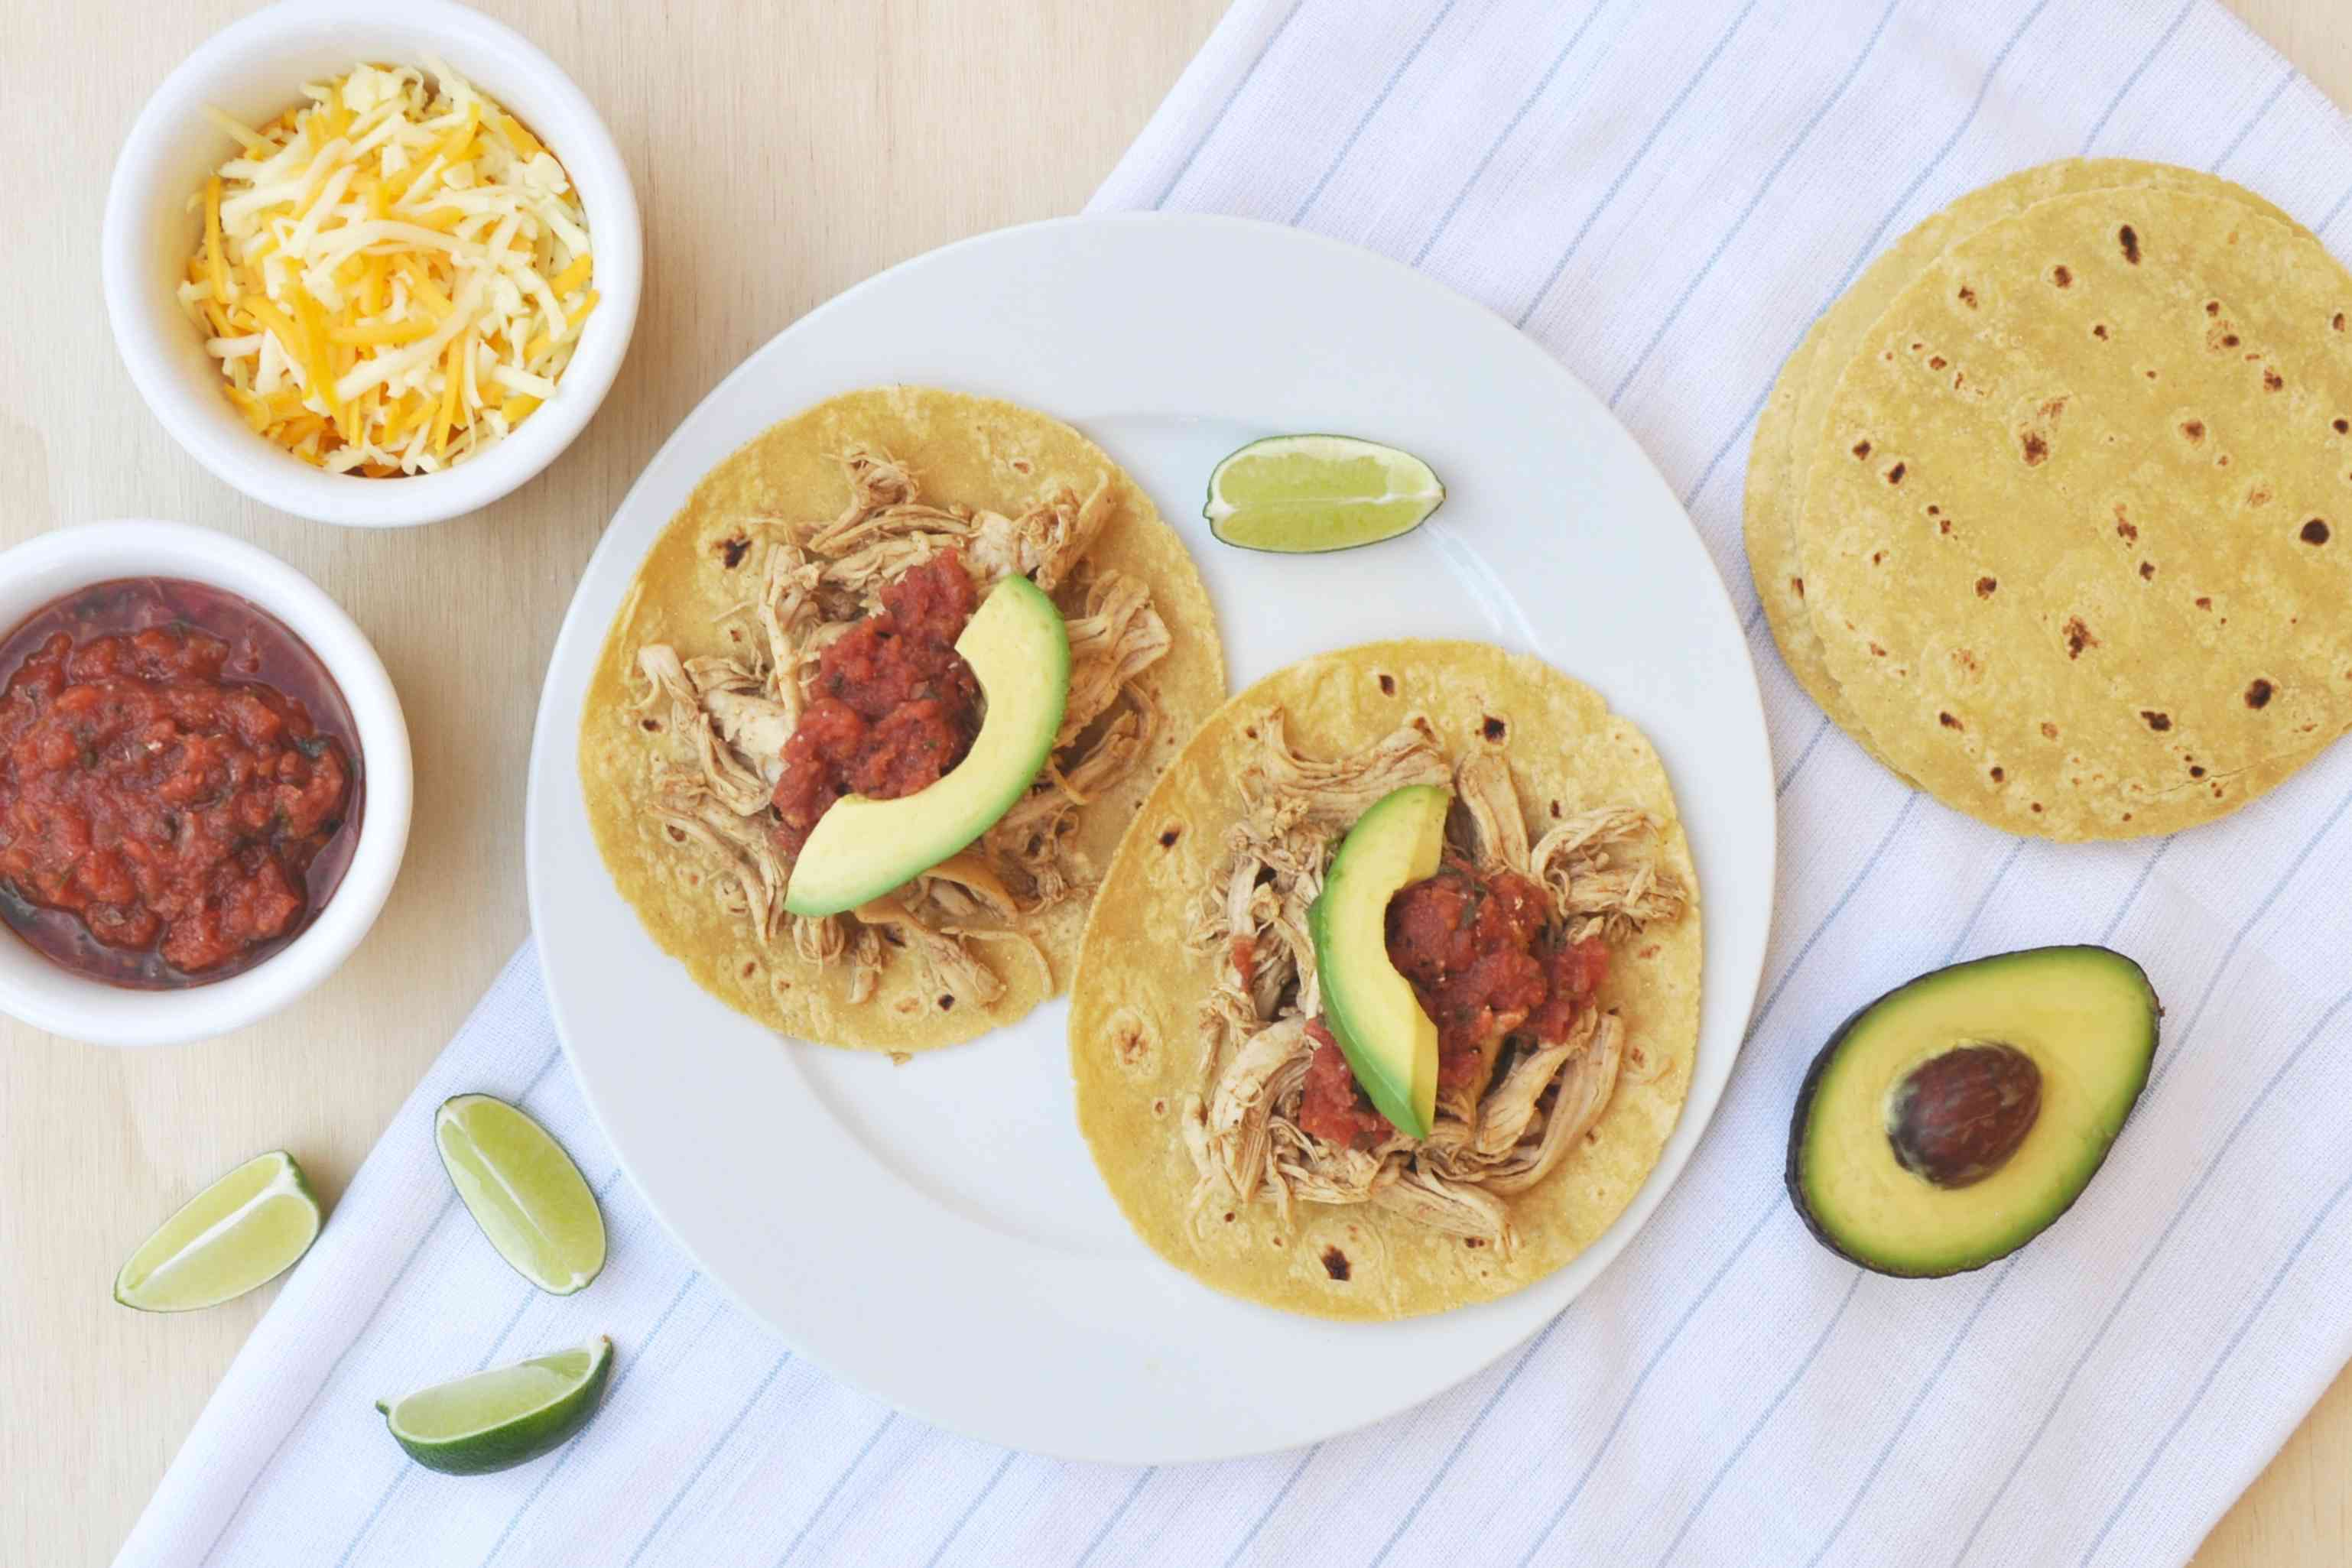 Pulled chicken tacos with garnishes